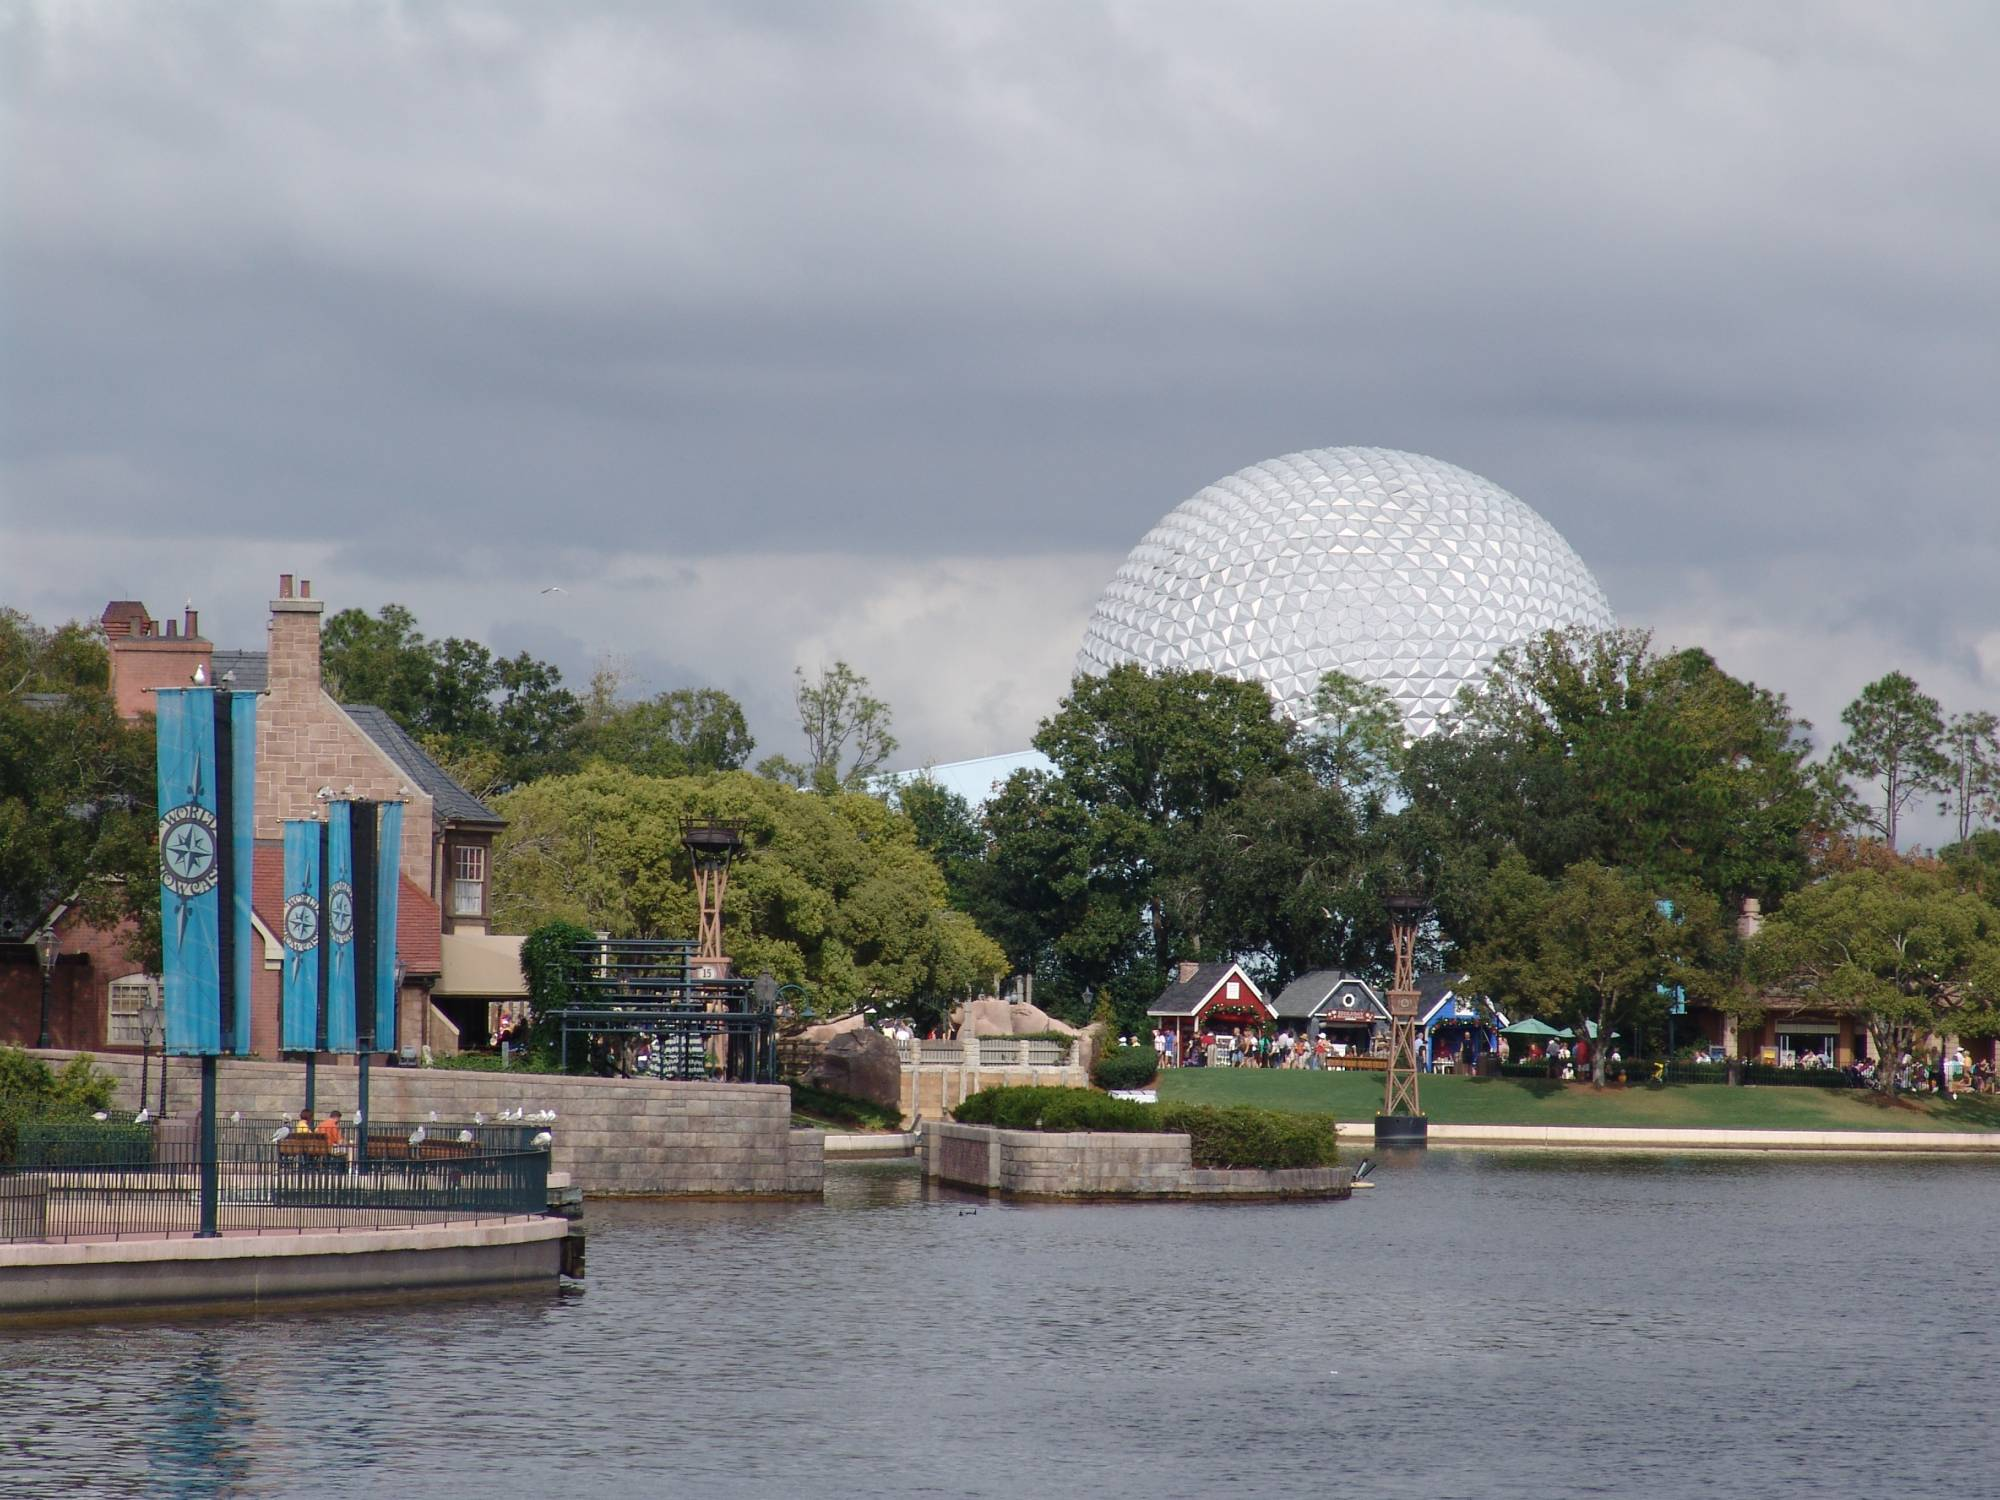 Epcot - Spaceship Earth from World Showcase